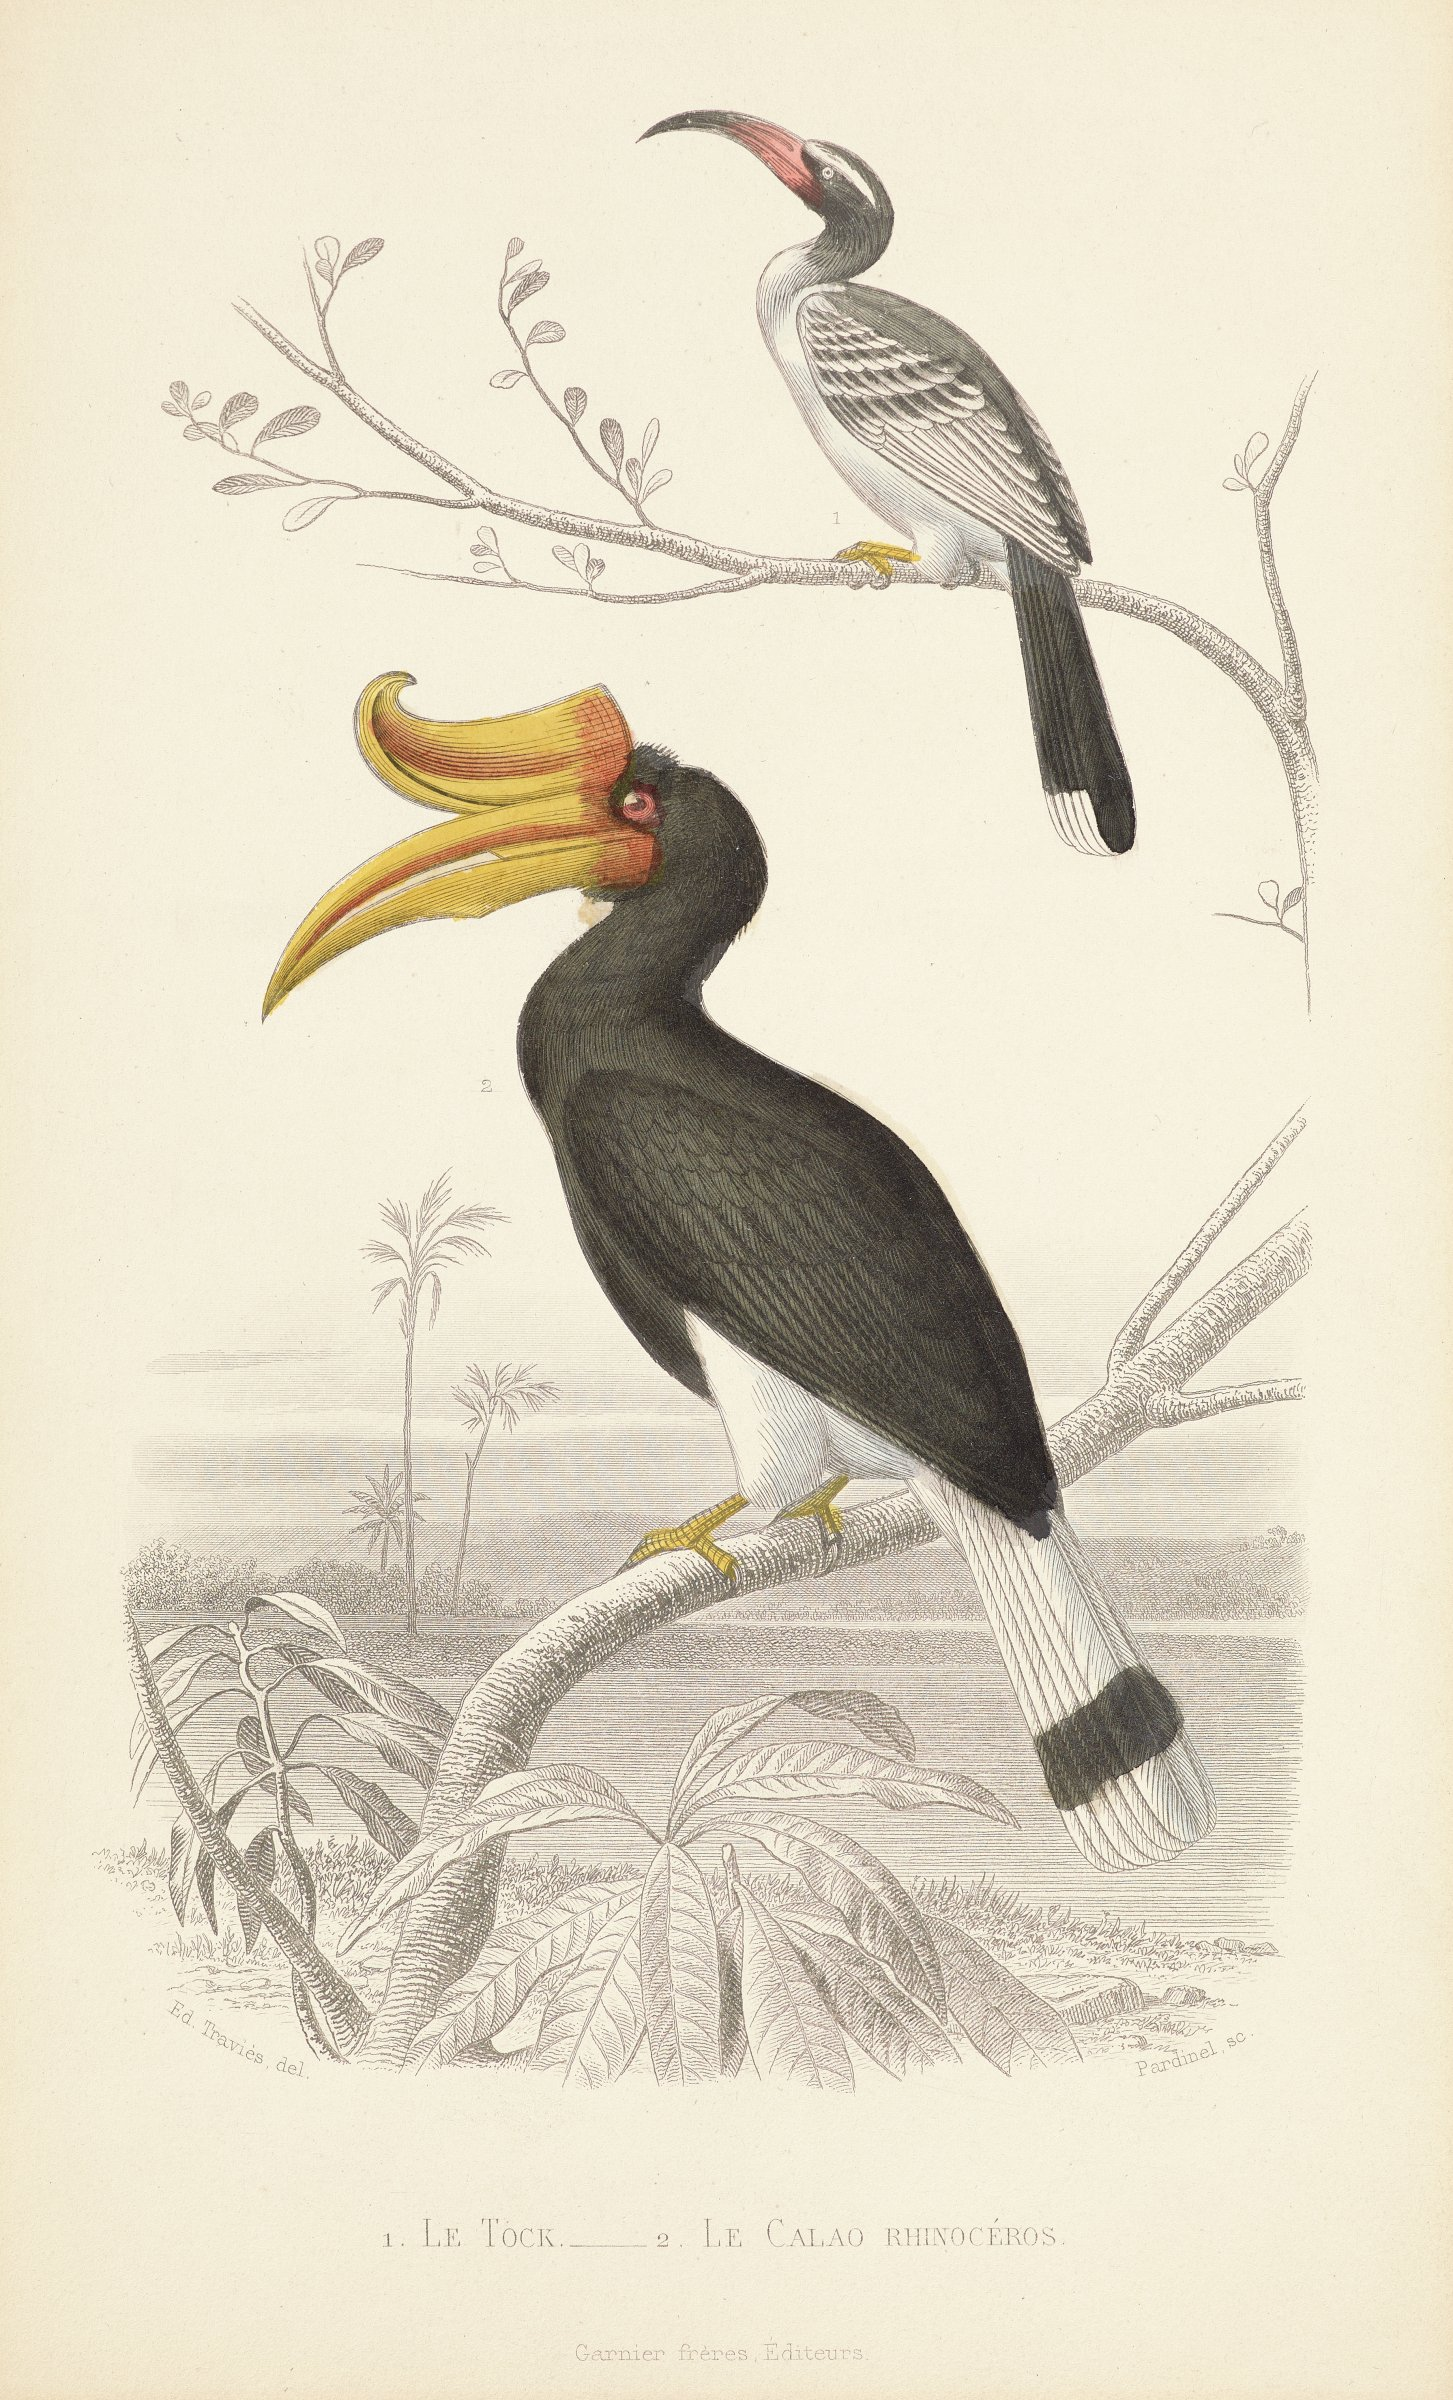 Two hand-colored birds stand on an uncolored tree limb.The upper bird has black and white feathers with a thin red and black beak. The lower bird has black and white feathers with a large yellow and red beak. Above its beak is a yellow and red horn that curves upwards.